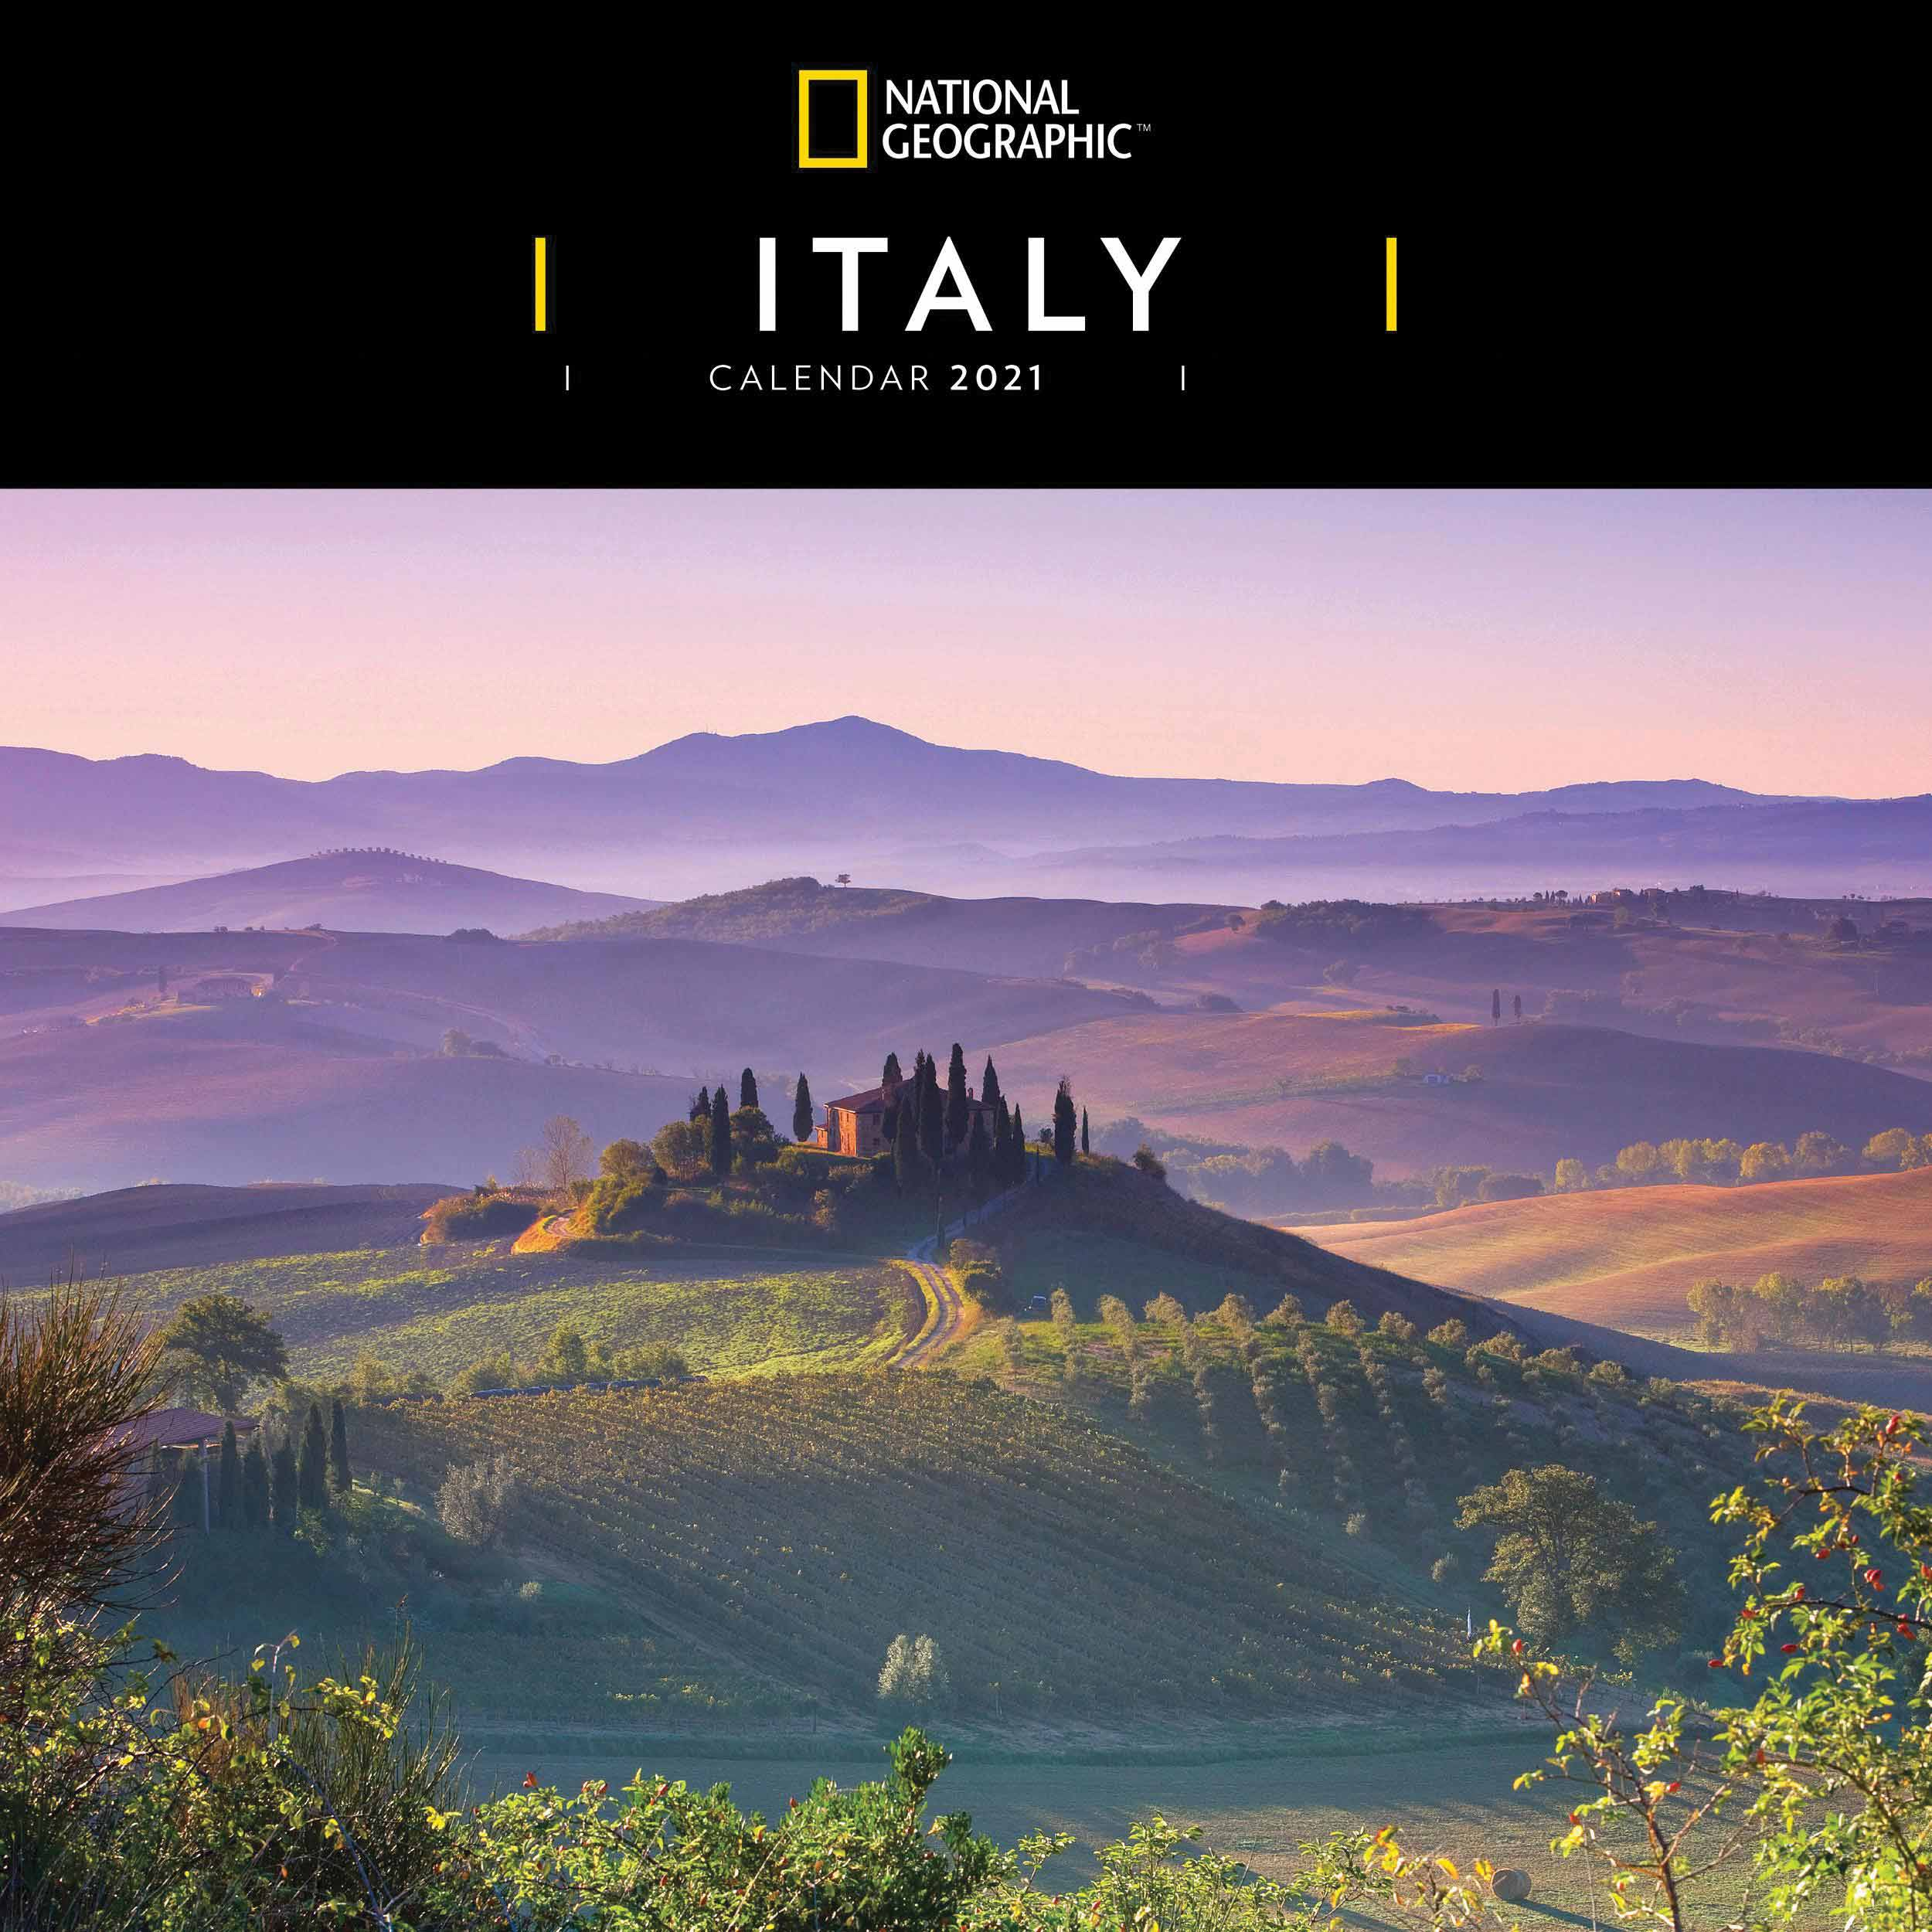 National Geographic, Italy Calendar 2021 at Calendar Club